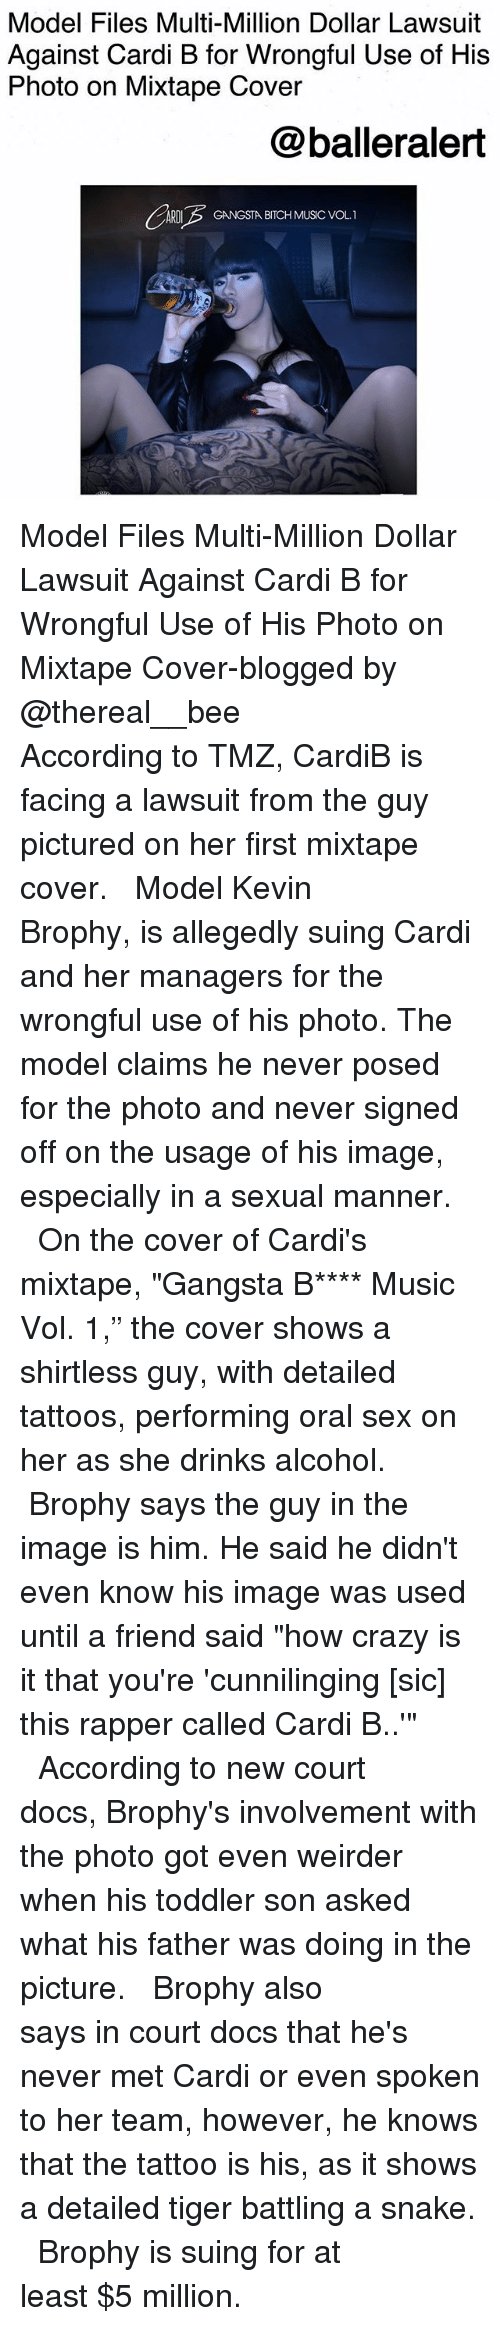 """Bitch, Crazy, and Gangsta: Model Files Multi-Million Dollar Lawsuit  Against Cardi B for Wrongful Use of His  Photo on Mixtape Cover  @balleralert  ARDIGANGSTA BITCH MUSIC VOL.1 Model Files Multi-Million Dollar Lawsuit Against Cardi B for Wrongful Use of His Photo on Mixtape Cover-blogged by @thereal__bee ⠀⠀⠀⠀⠀⠀⠀⠀⠀ ⠀⠀ According to TMZ, CardiB is facing a lawsuit from the guy pictured on her first mixtape cover. ⠀⠀⠀⠀⠀⠀⠀⠀⠀ ⠀⠀ Model Kevin Brophy, is allegedly suing Cardi and her managers for the wrongful use of his photo. The model claims he never posed for the photo and never signed off on the usage of his image, especially in a sexual manner. ⠀⠀⠀⠀⠀⠀⠀⠀⠀ ⠀⠀ On the cover of Cardi's mixtape, """"Gangsta B**** Music Vol. 1,"""" the cover shows a shirtless guy, with detailed tattoos, performing oral sex on her as she drinks alcohol. ⠀⠀⠀⠀⠀⠀⠀⠀⠀ ⠀⠀ Brophy says the guy in the image is him. He said he didn't even know his image was used until a friend said """"how crazy is it that you're 'cunnilinging [sic] this rapper called Cardi B..'"""" ⠀⠀⠀⠀⠀⠀⠀⠀⠀ ⠀⠀ According to new court docs, Brophy's involvement with the photo got even weirder when his toddler son asked what his father was doing in the picture. ⠀⠀⠀⠀⠀⠀⠀⠀⠀ ⠀⠀ Brophy also says in court docs that he's never met Cardi or even spoken to her team, however, he knows that the tattoo is his, as it shows a detailed tiger battling a snake. ⠀⠀⠀⠀⠀⠀⠀⠀⠀ ⠀⠀ Brophy is suing for at least $5 million."""